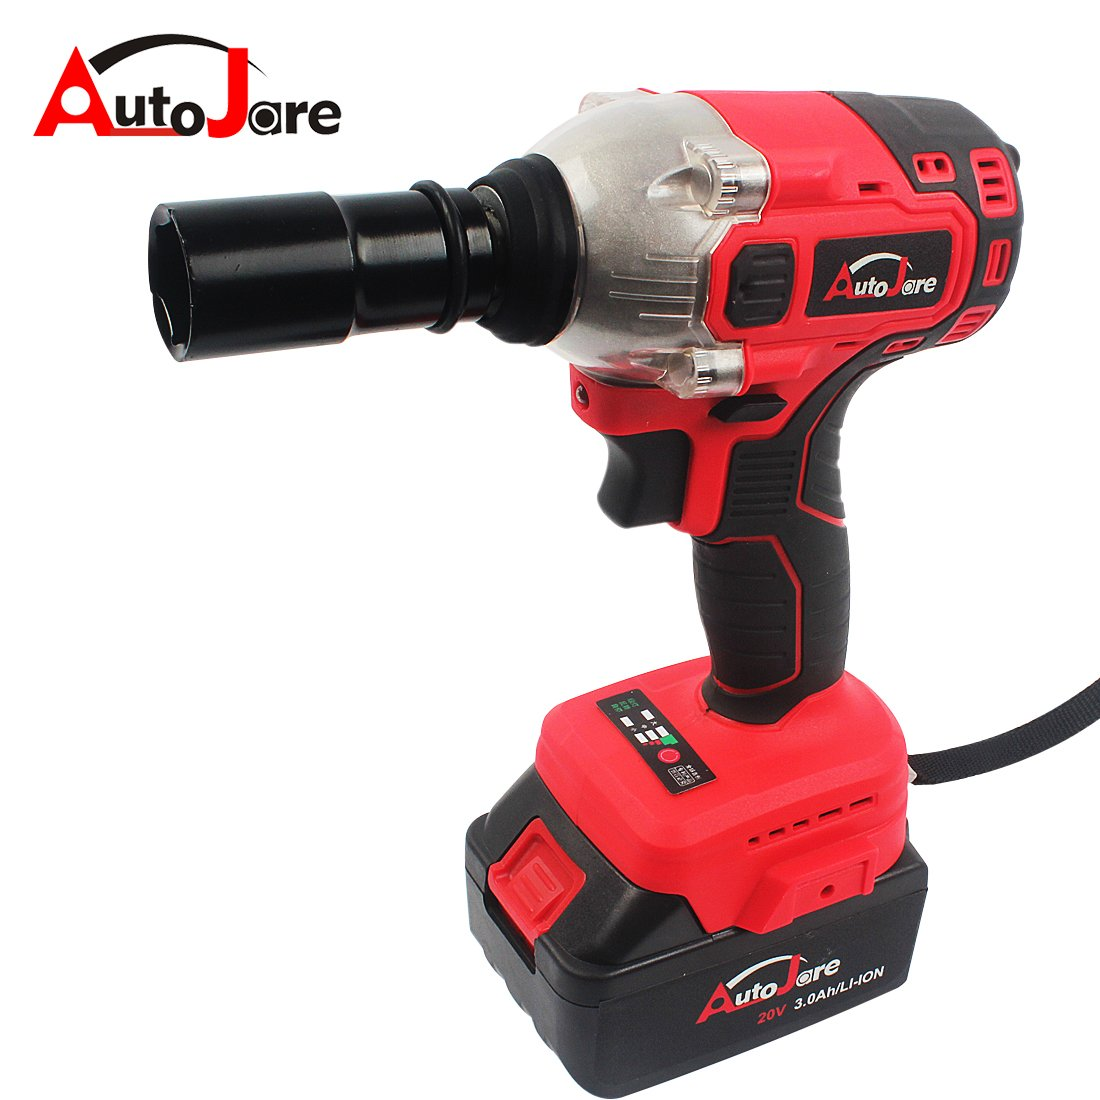 Autojare- 1/2inch Cordless Impact Wrench 20V Combination Wrench Set with LED Light + Rechargeable Battery